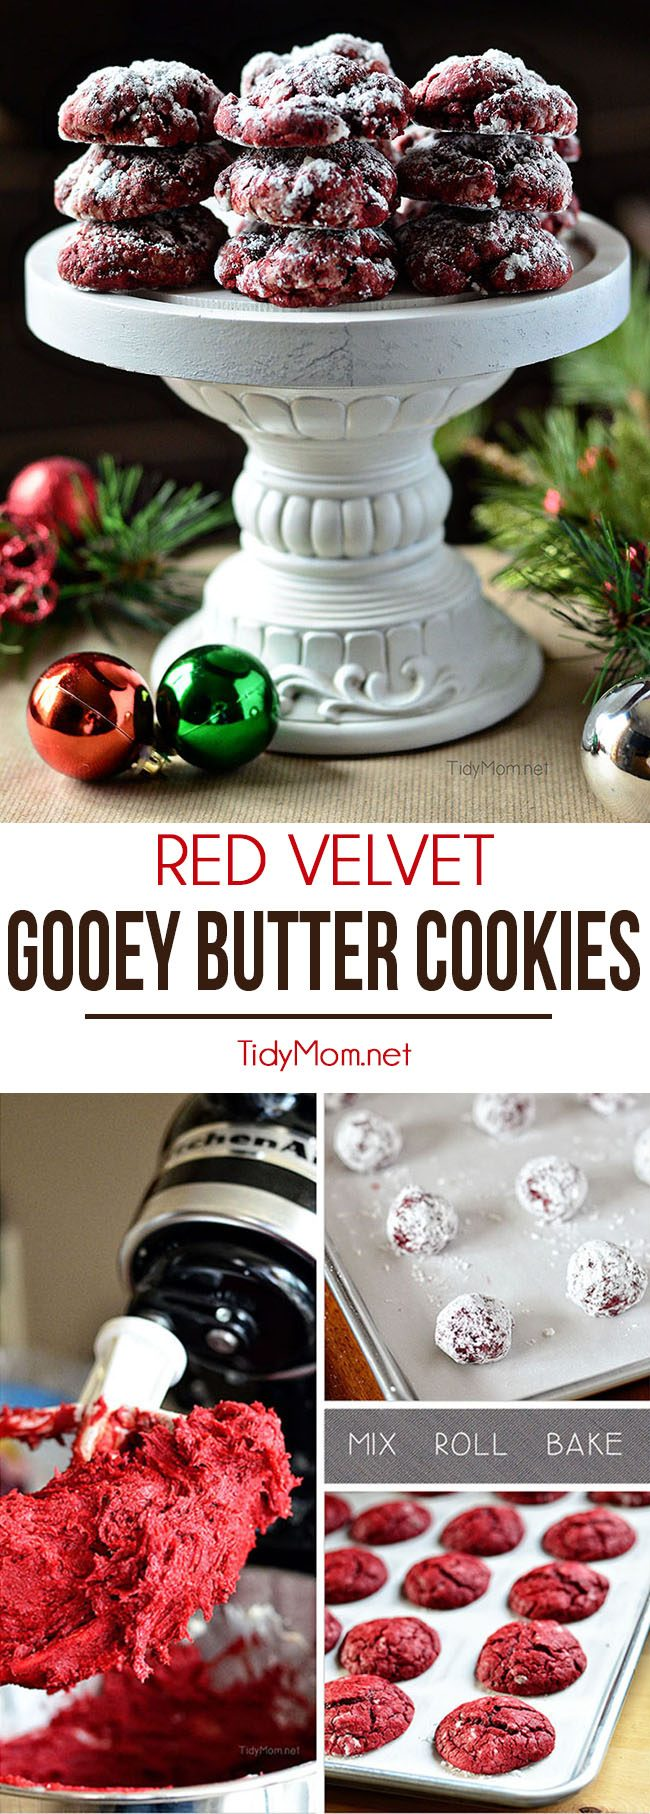 Red Velvet Cookies for Christmas photo collage